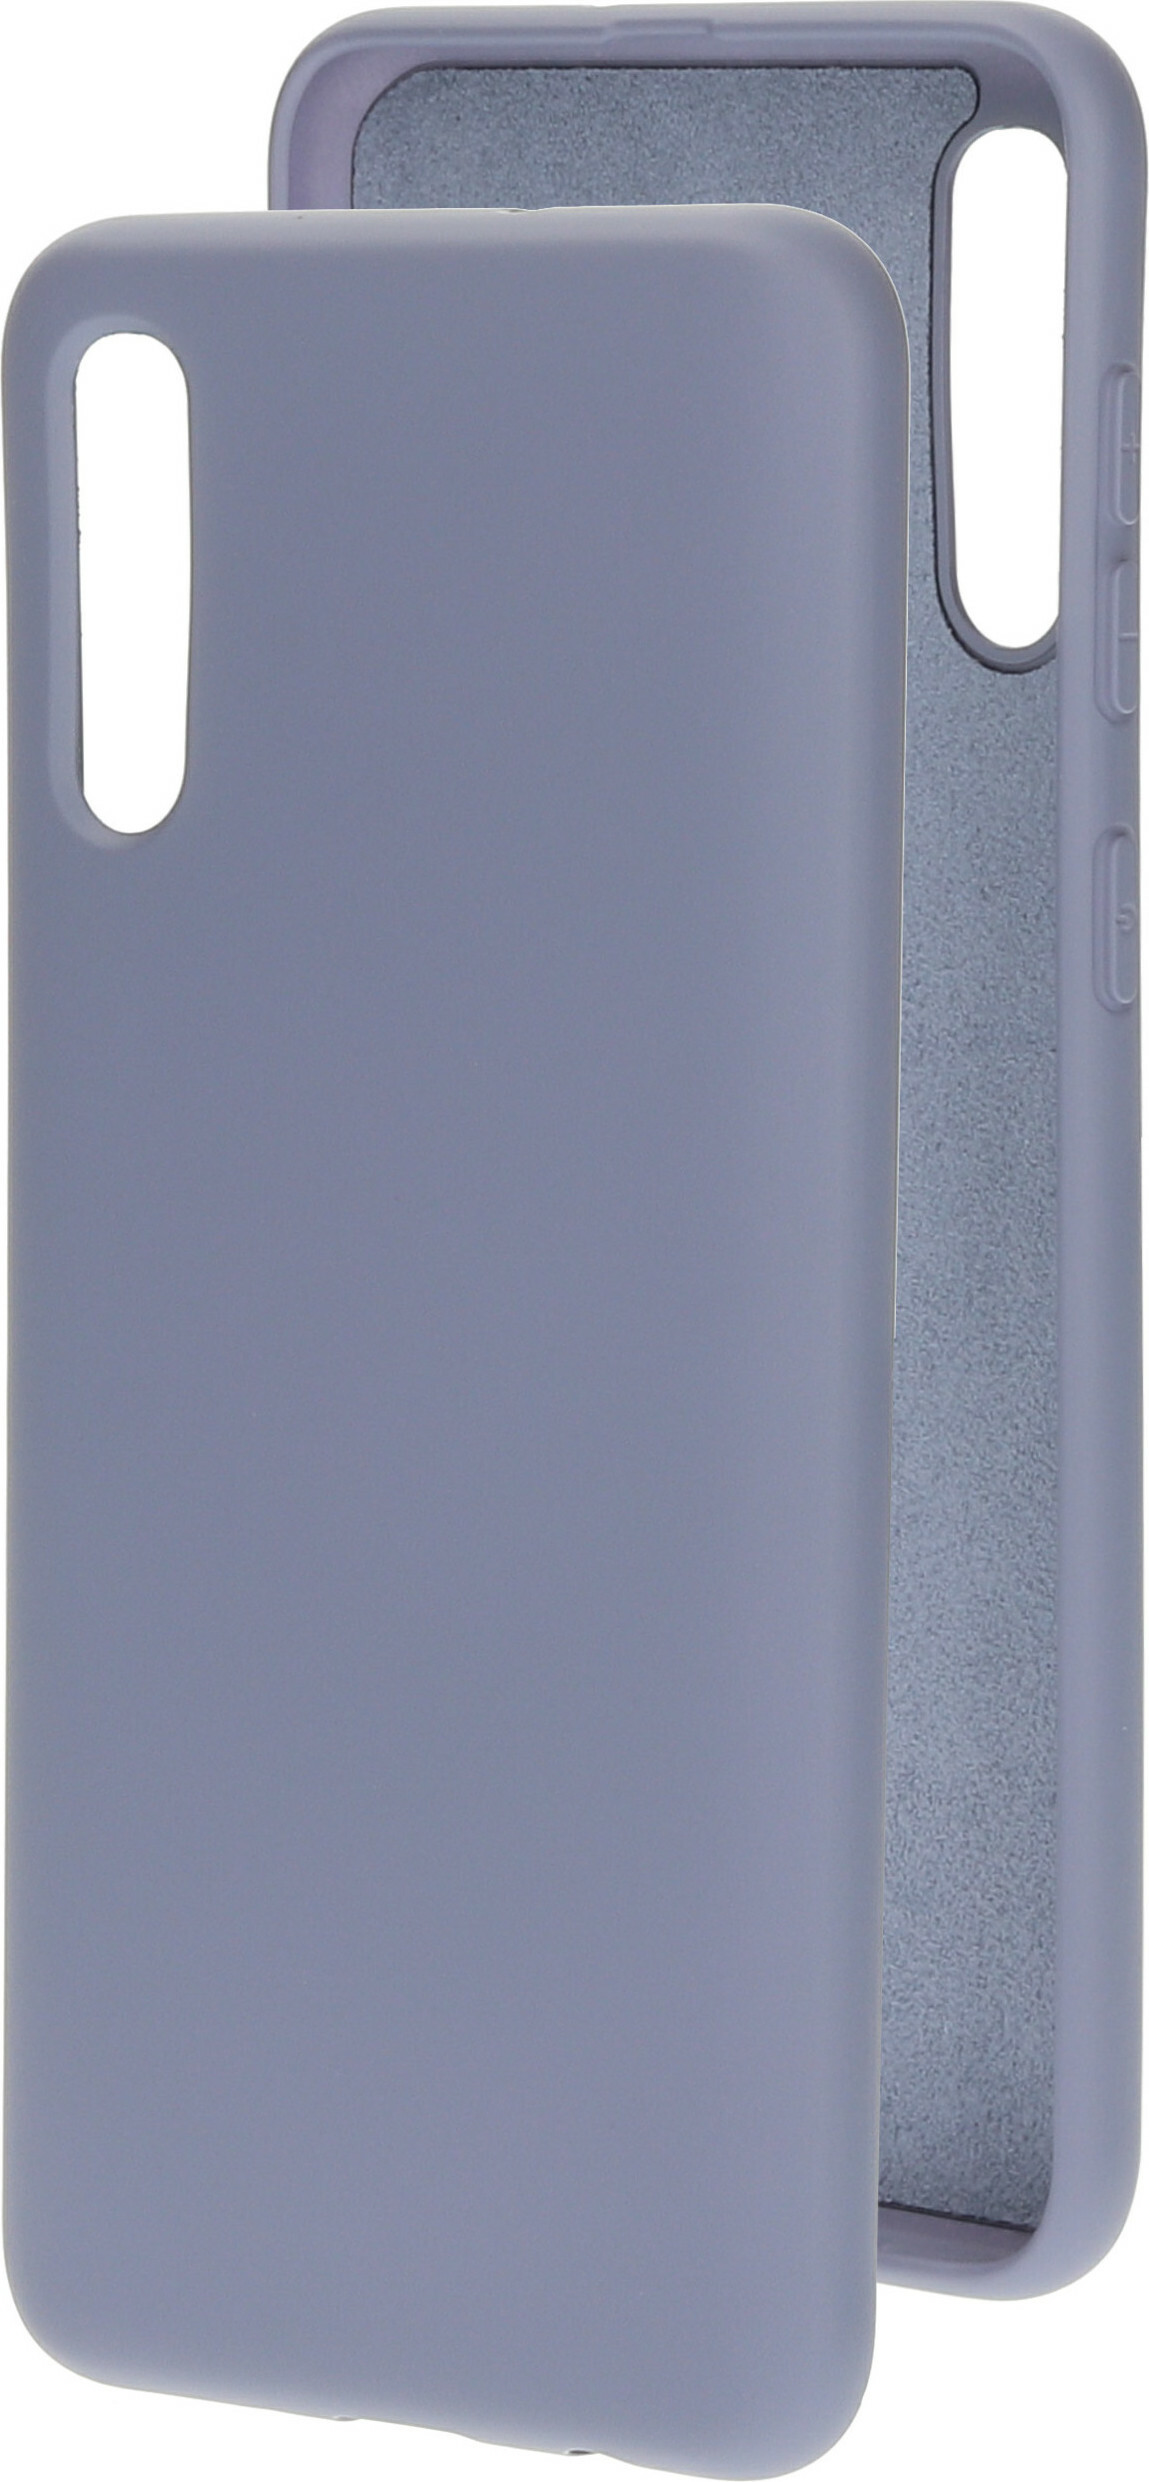 Mobiparts Silicone Cover Samsung Galaxy A50/A30S Royal Grey